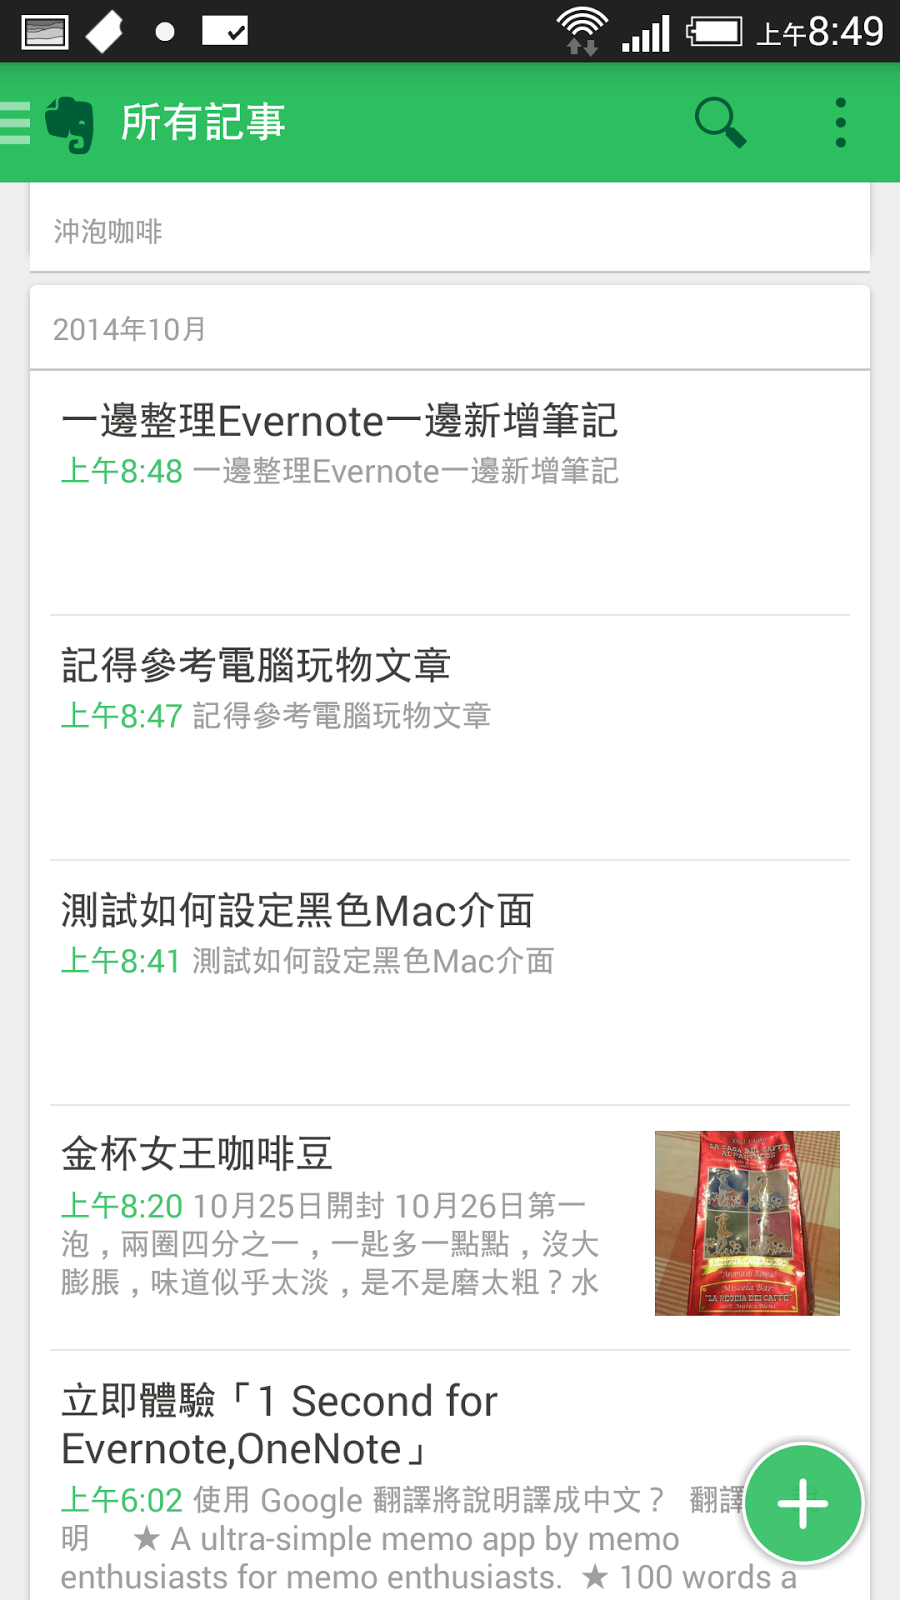 Android 最快桌面便利貼App 可同步Evernote OneNote